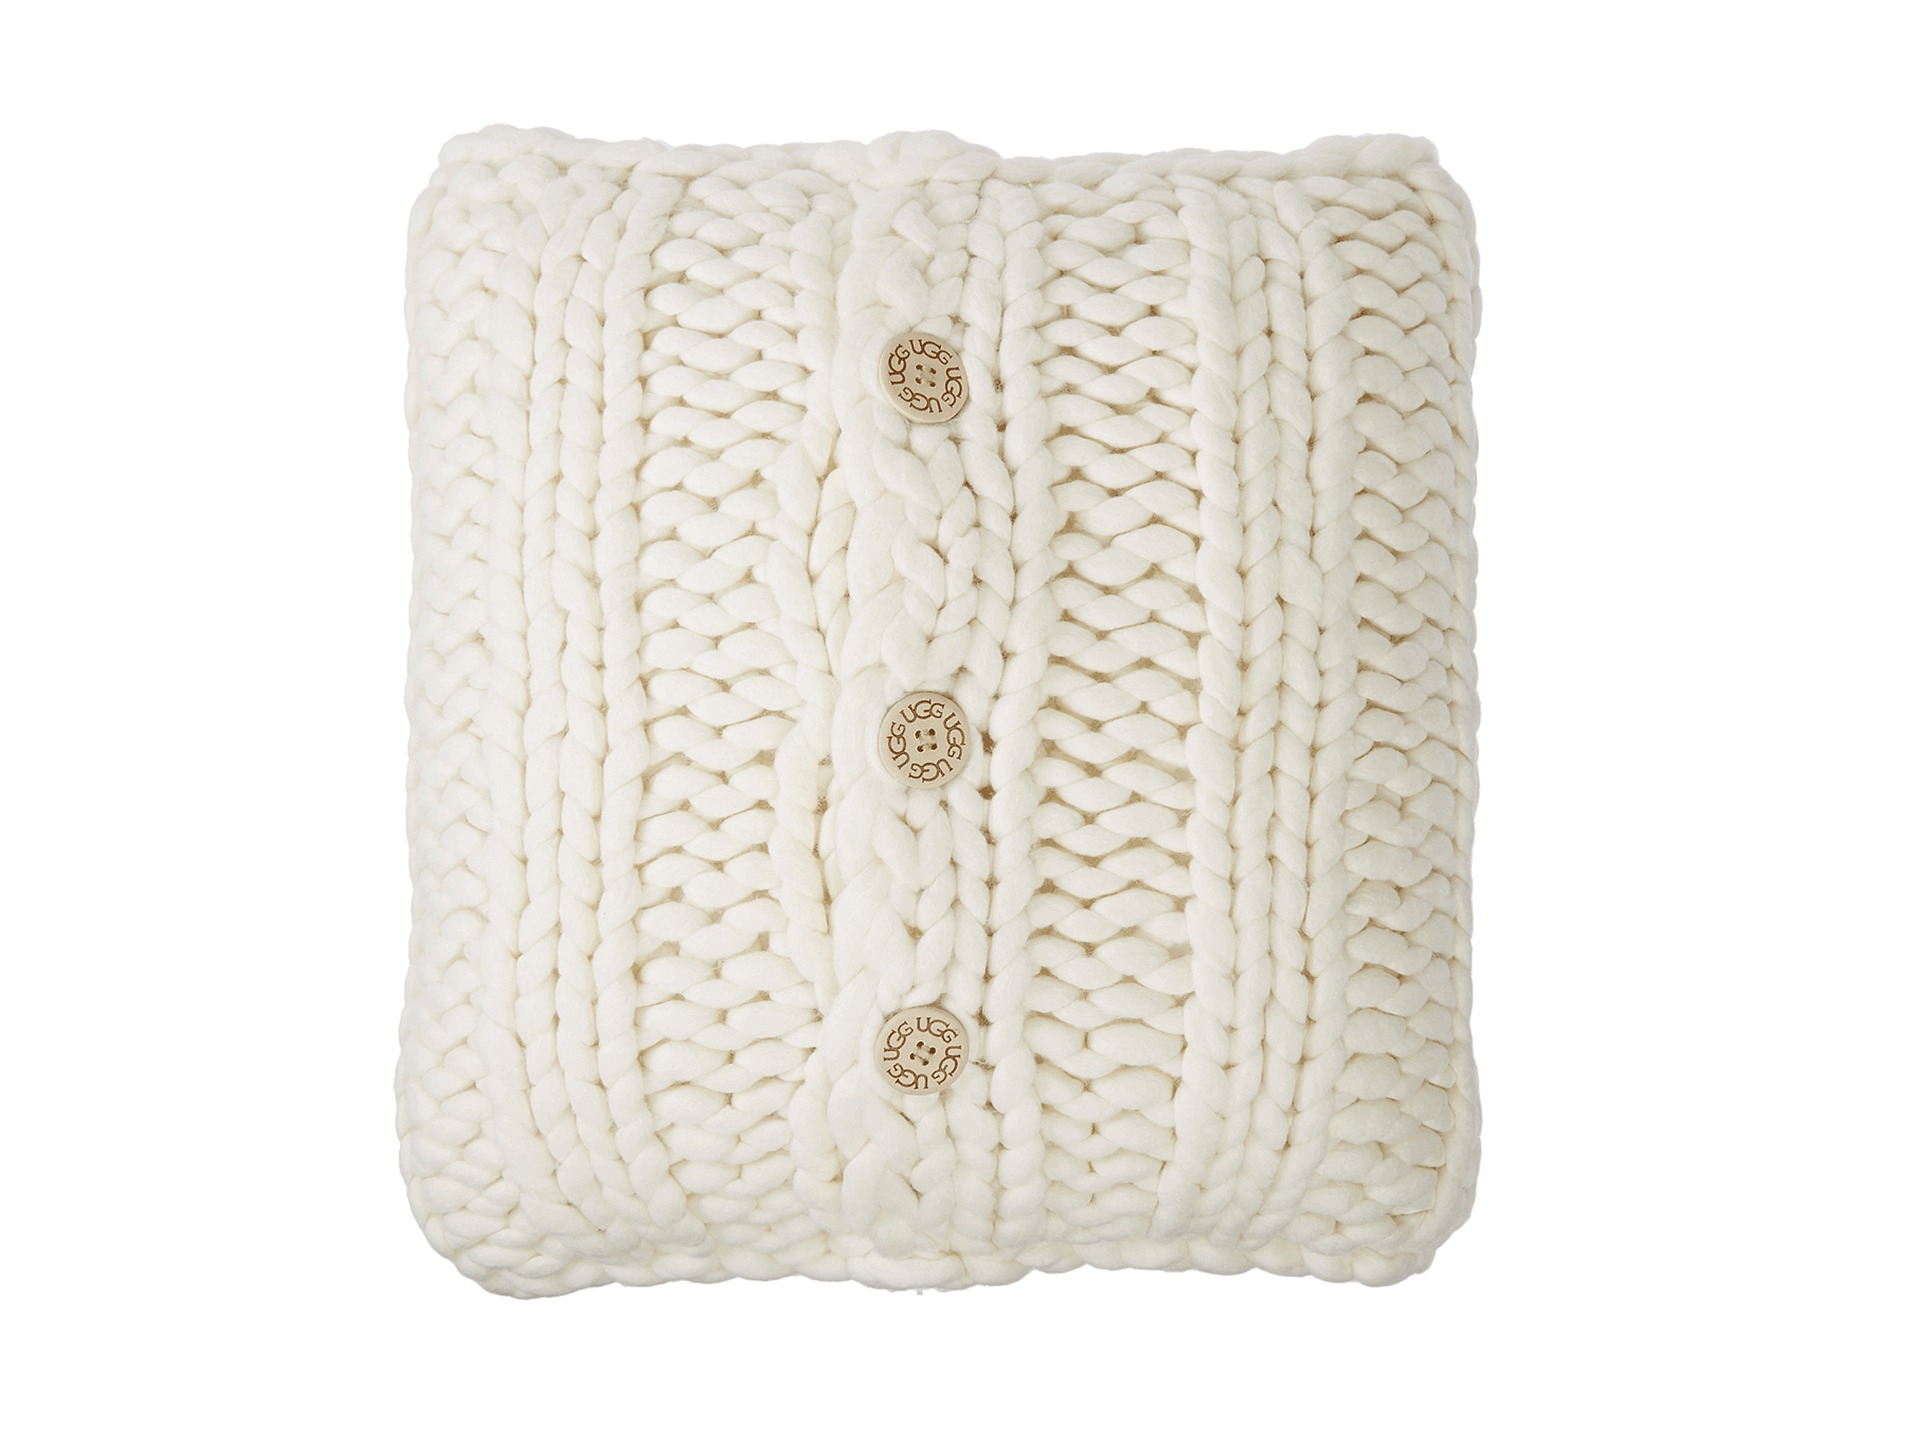 Ugg Oversized Knit Pillow Natural Zappos Com Free